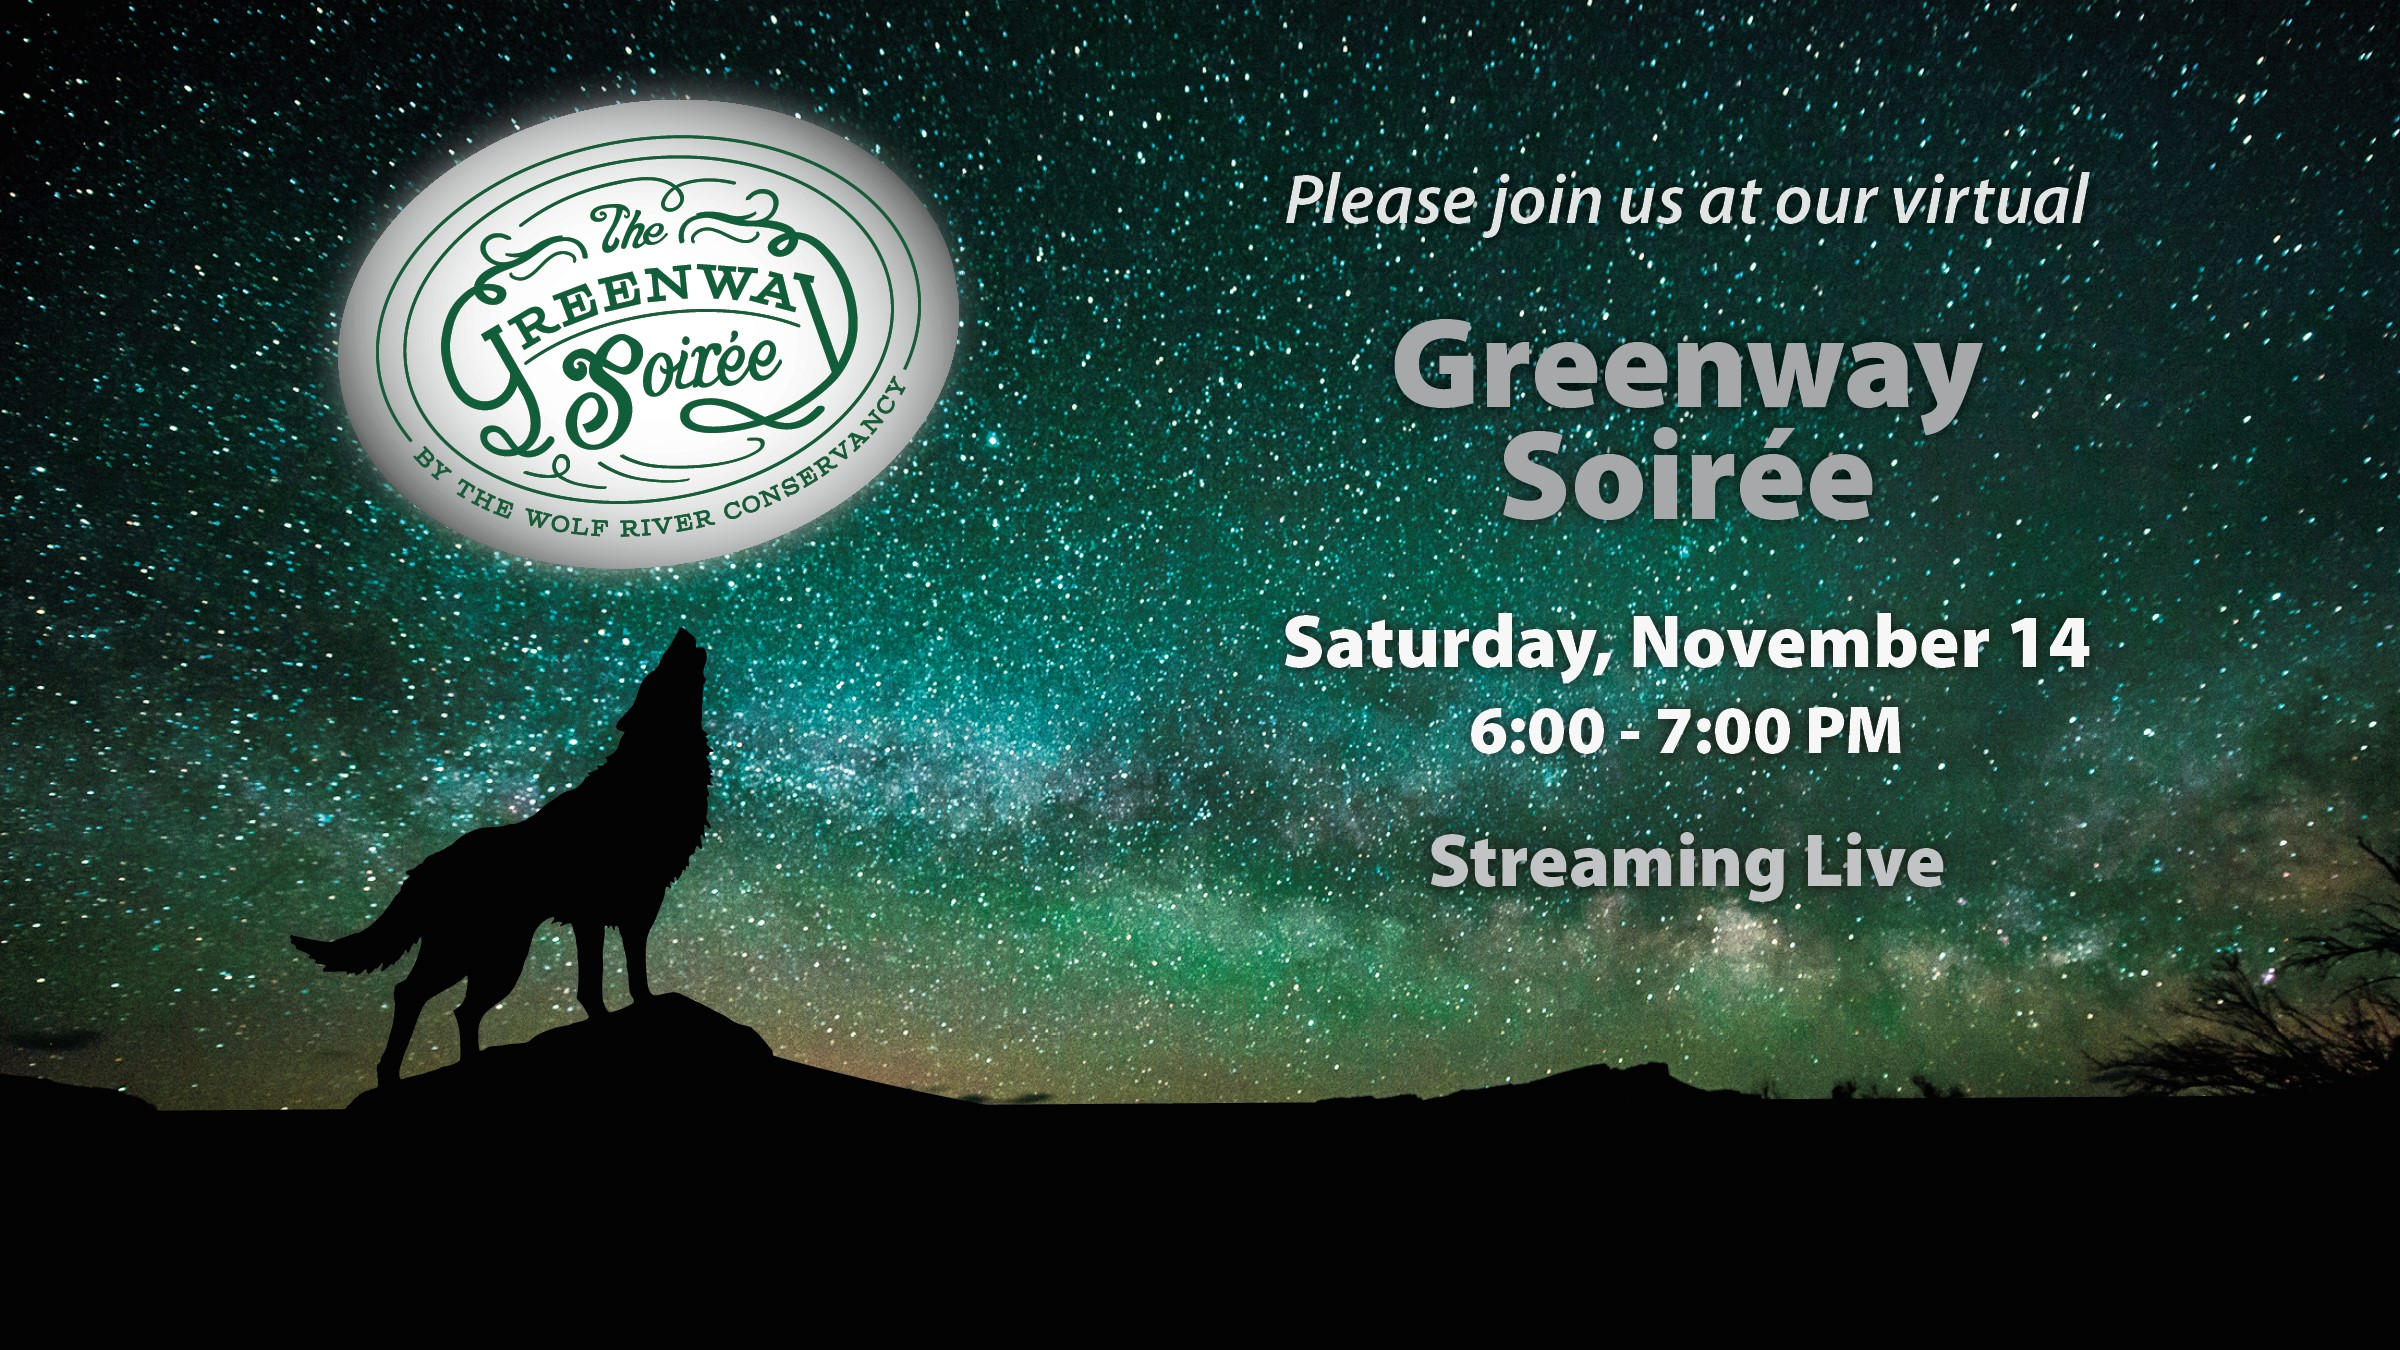 The Virtual Greenway Soirée